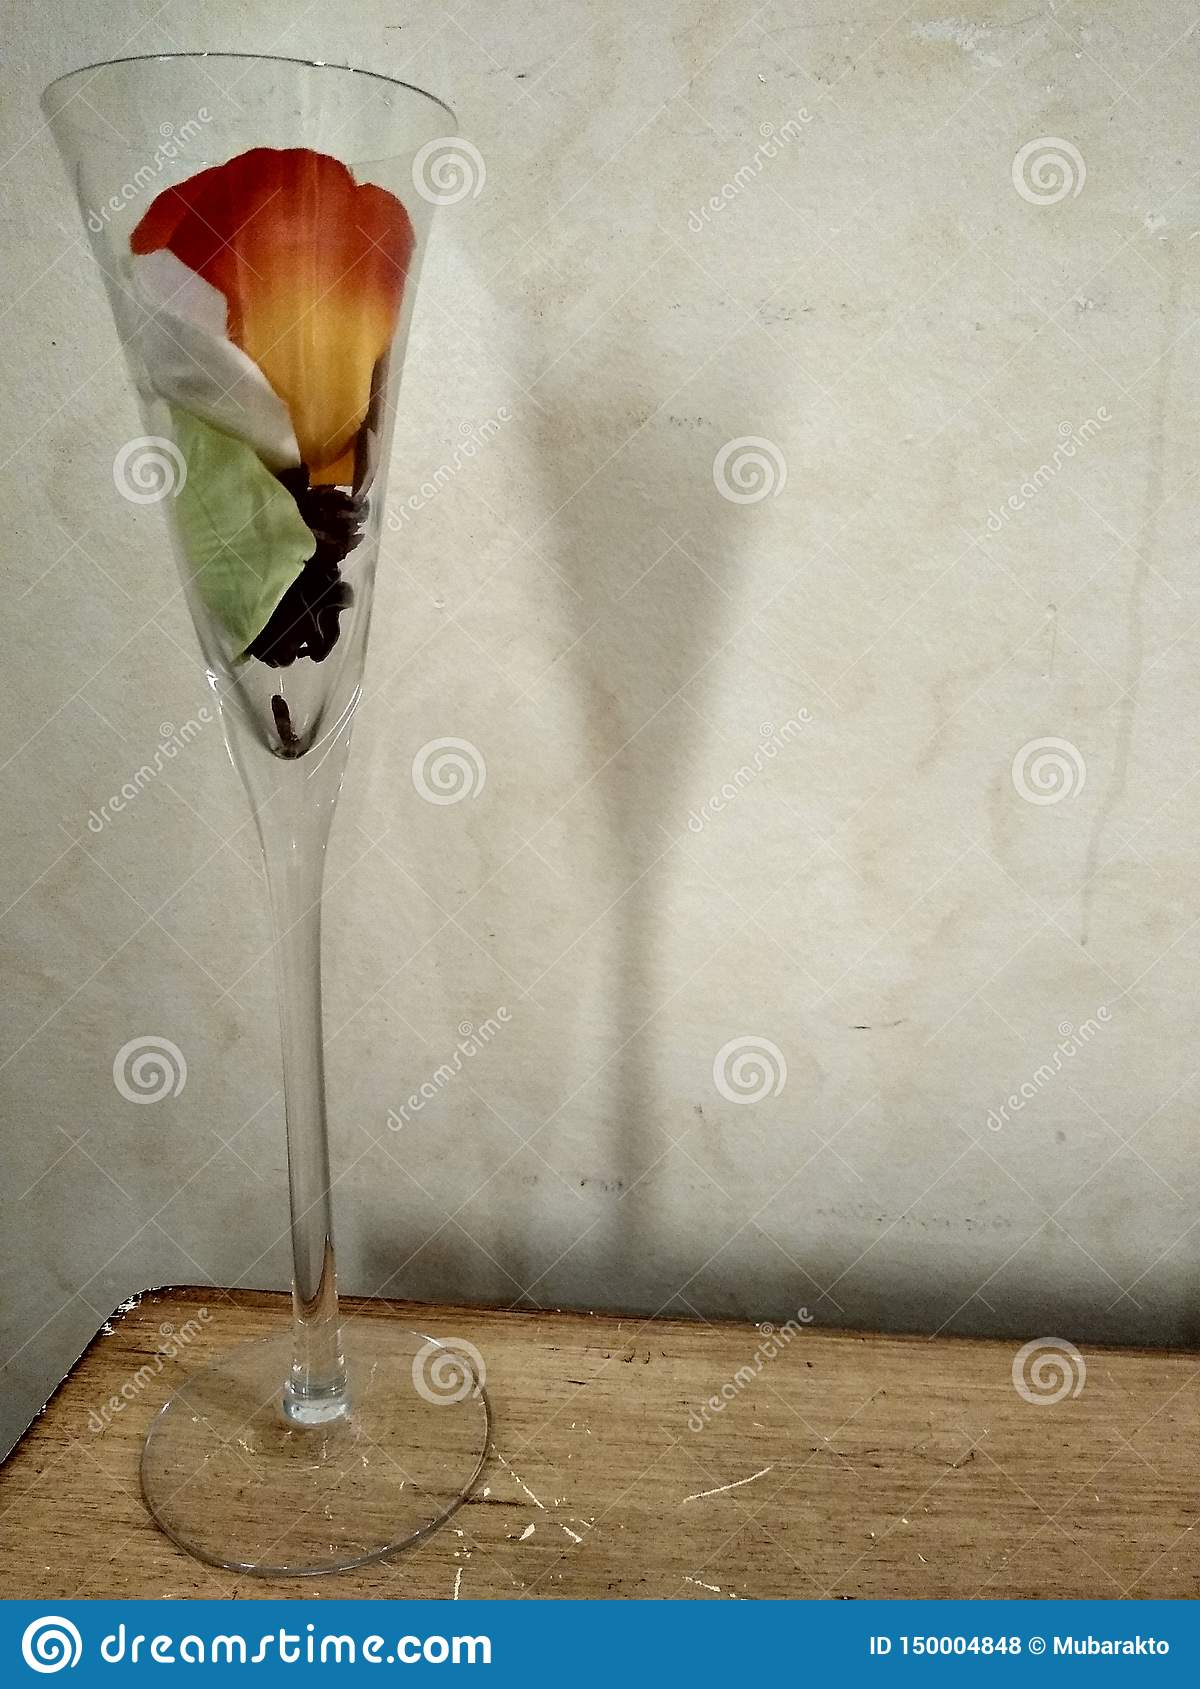 Large glass with flower in